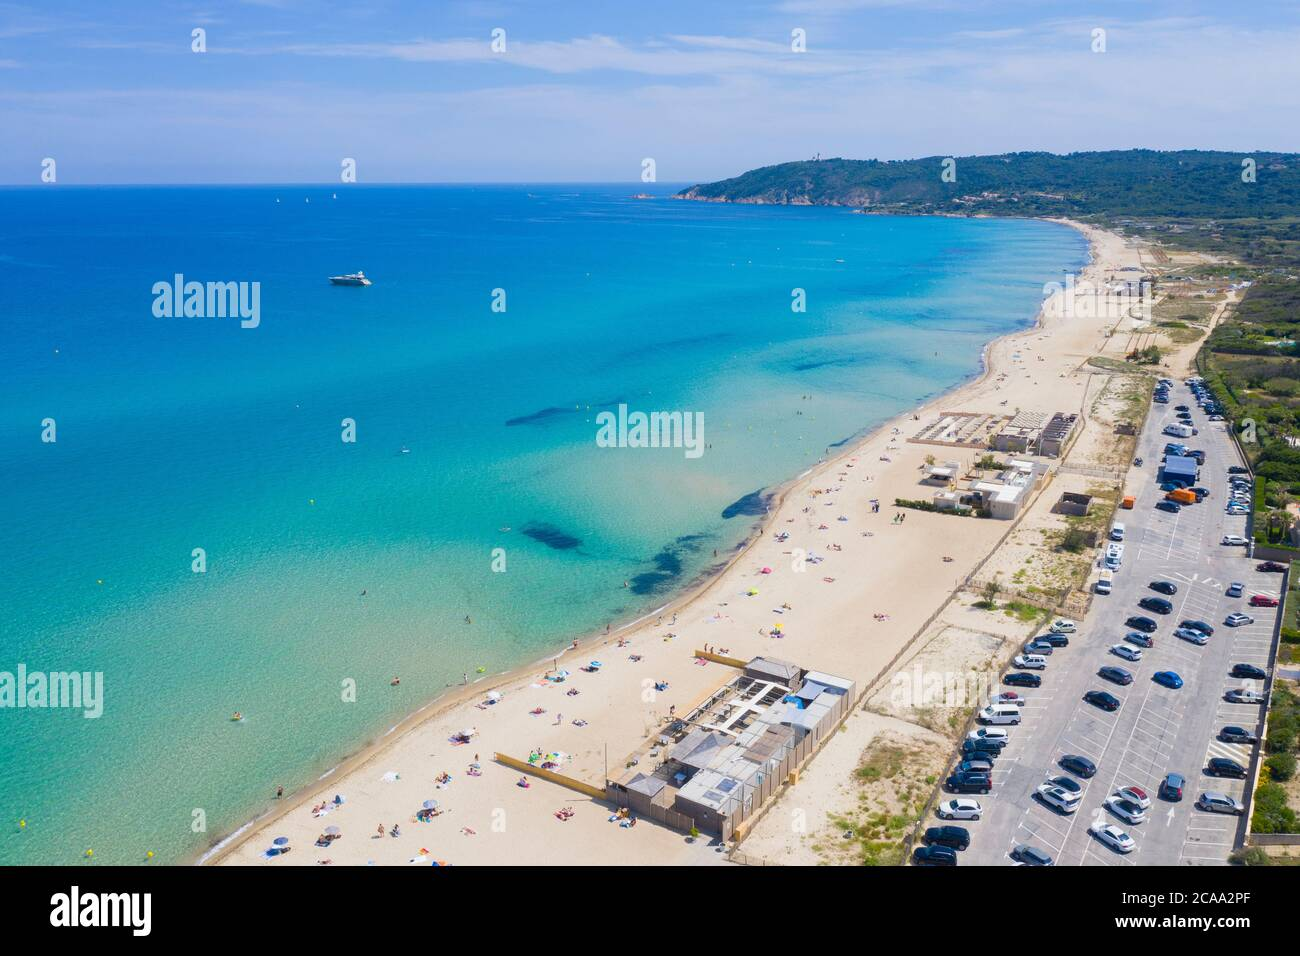 Var department, Ramatuelle - Saint Tropez, Aerial view of Pampelonne beach, the famous beach located on French Riviera Stock Photo